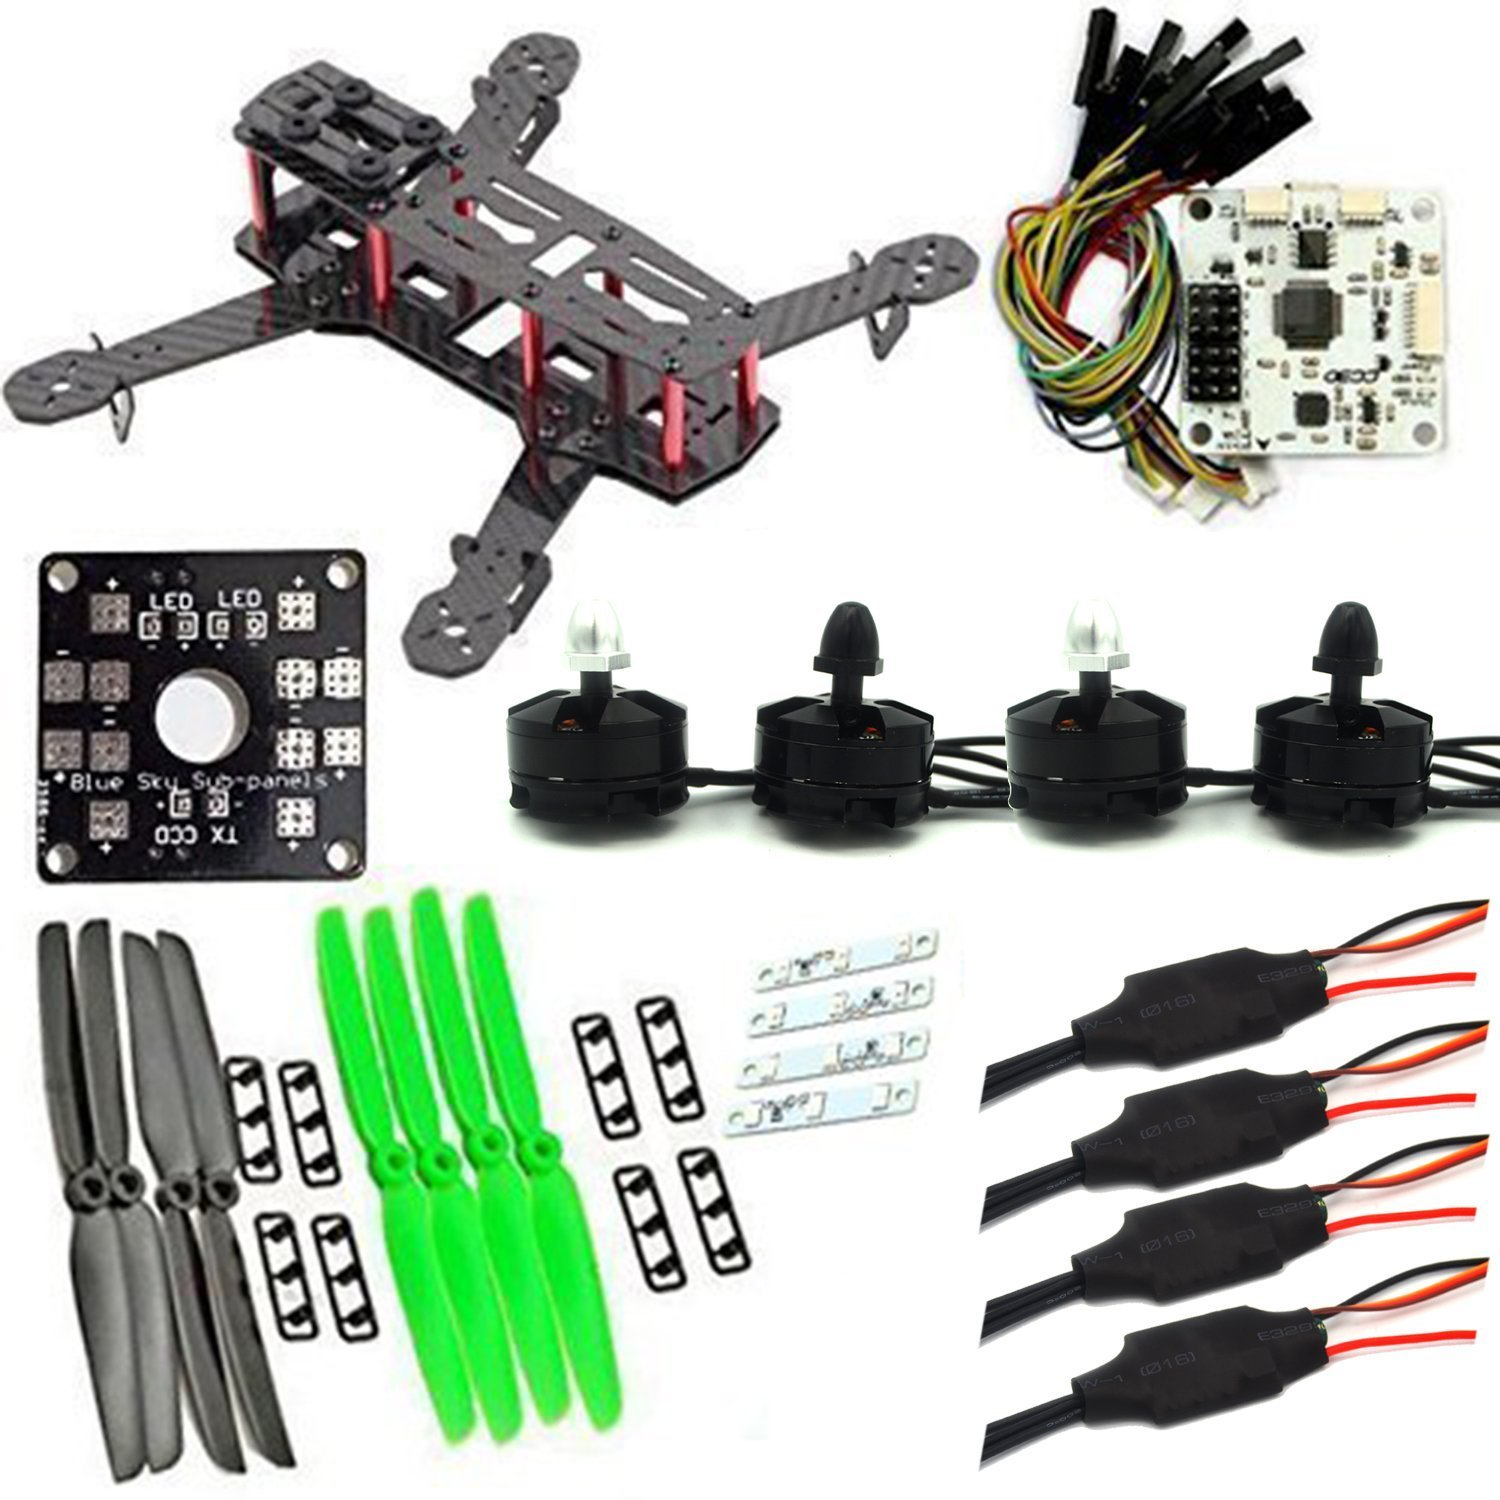 programmable-robot-kits-LHI